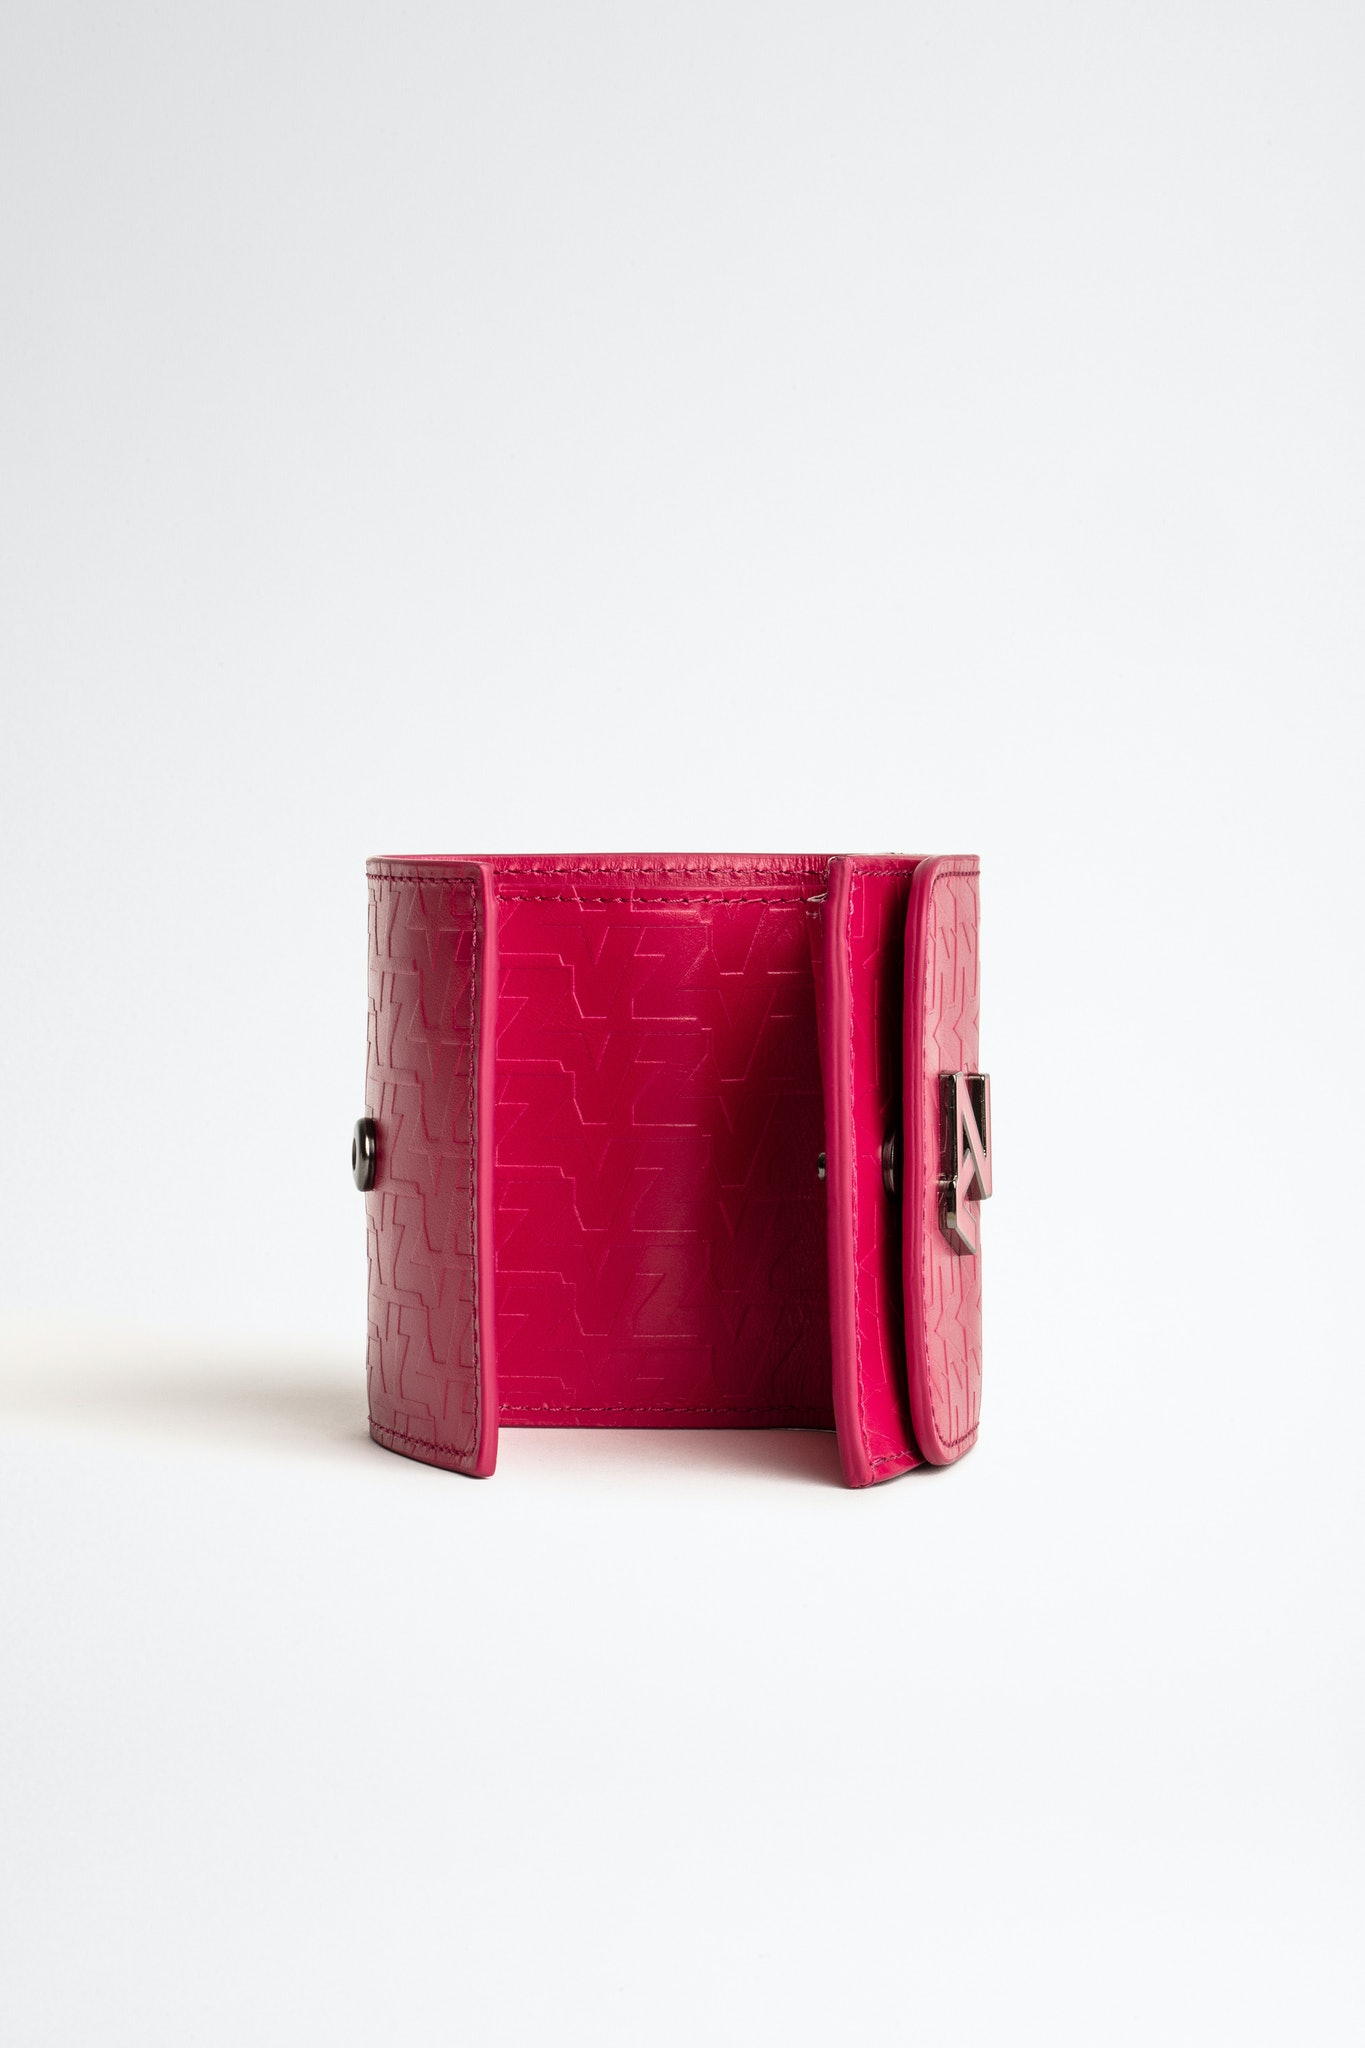 ZV Initiale Le Trifold Wallet